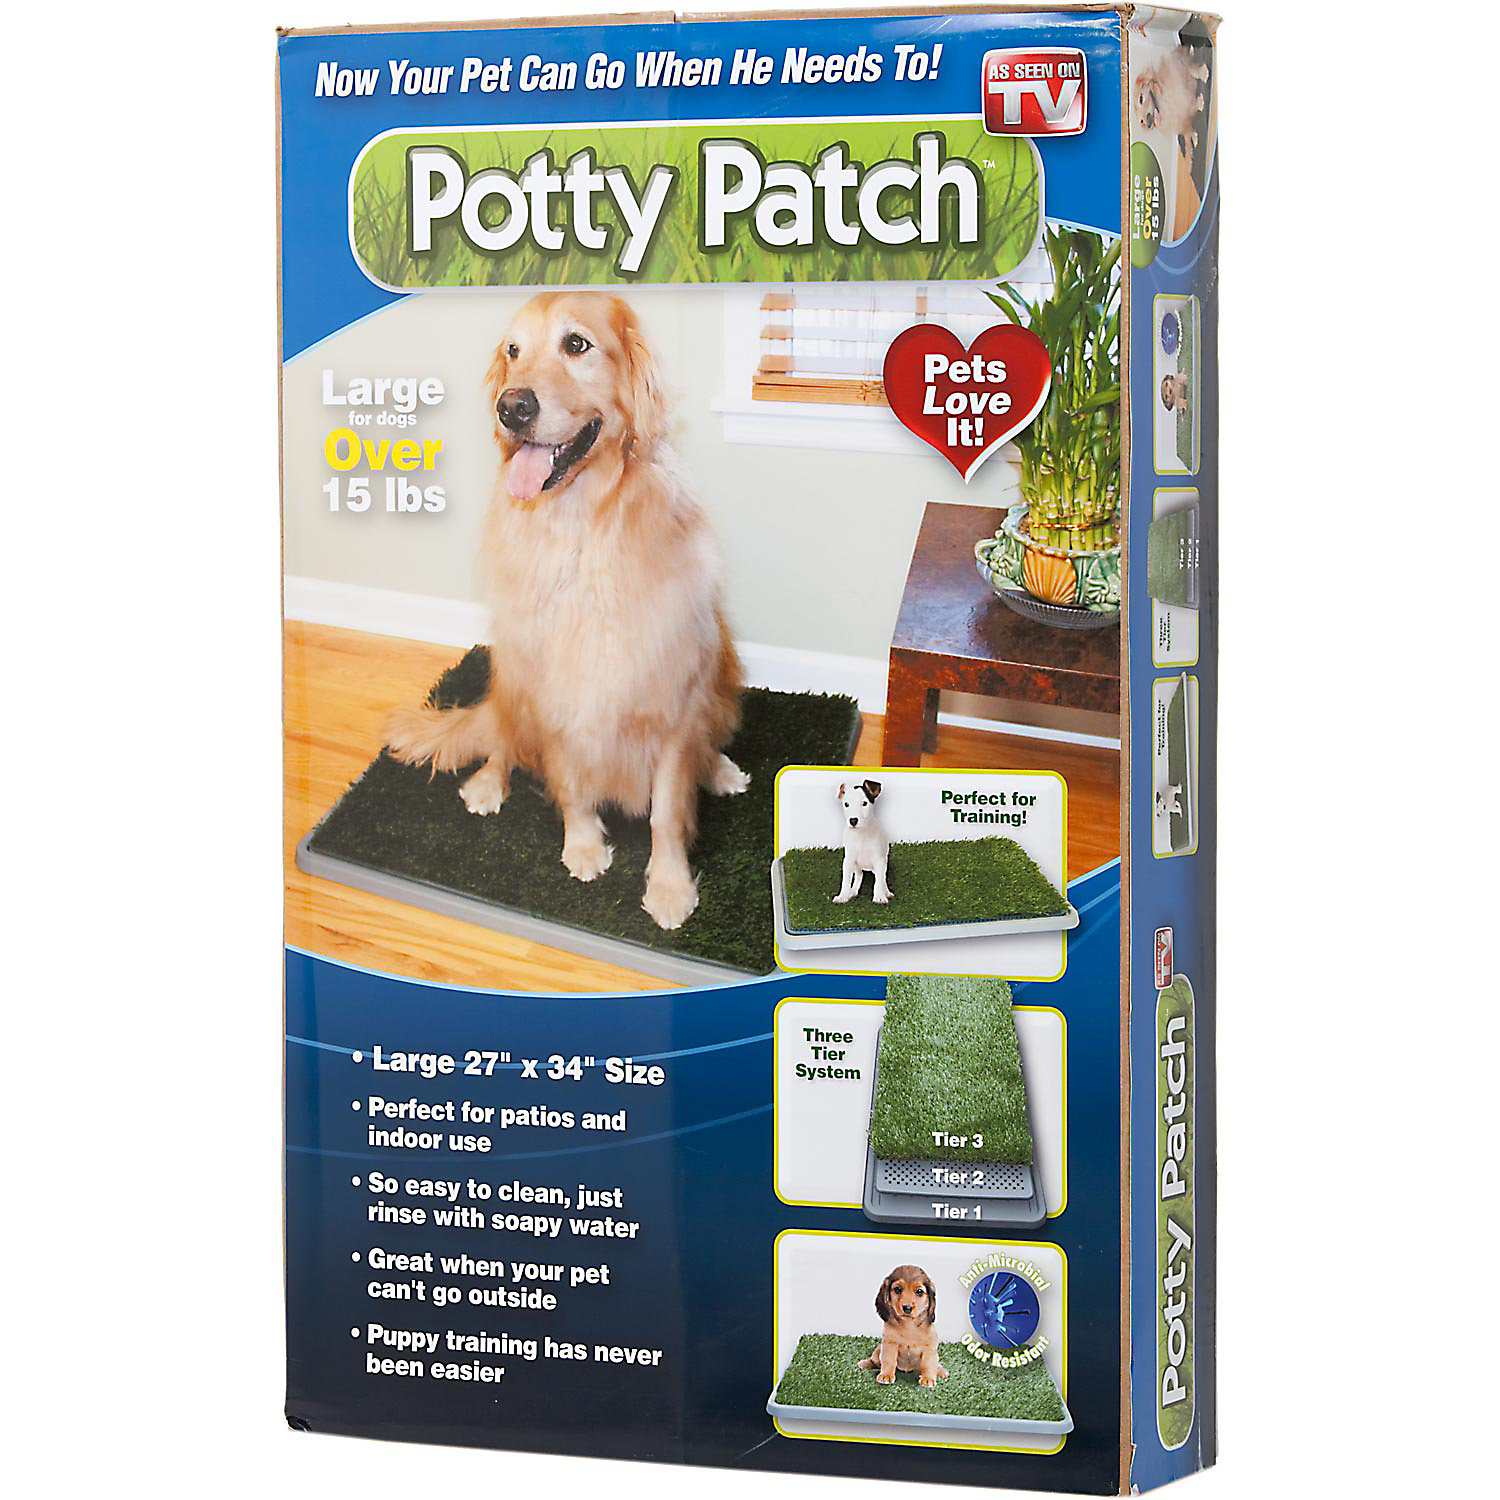 Potty Patch As Seen On Tv Products In 2019 Indoor Dog Potty